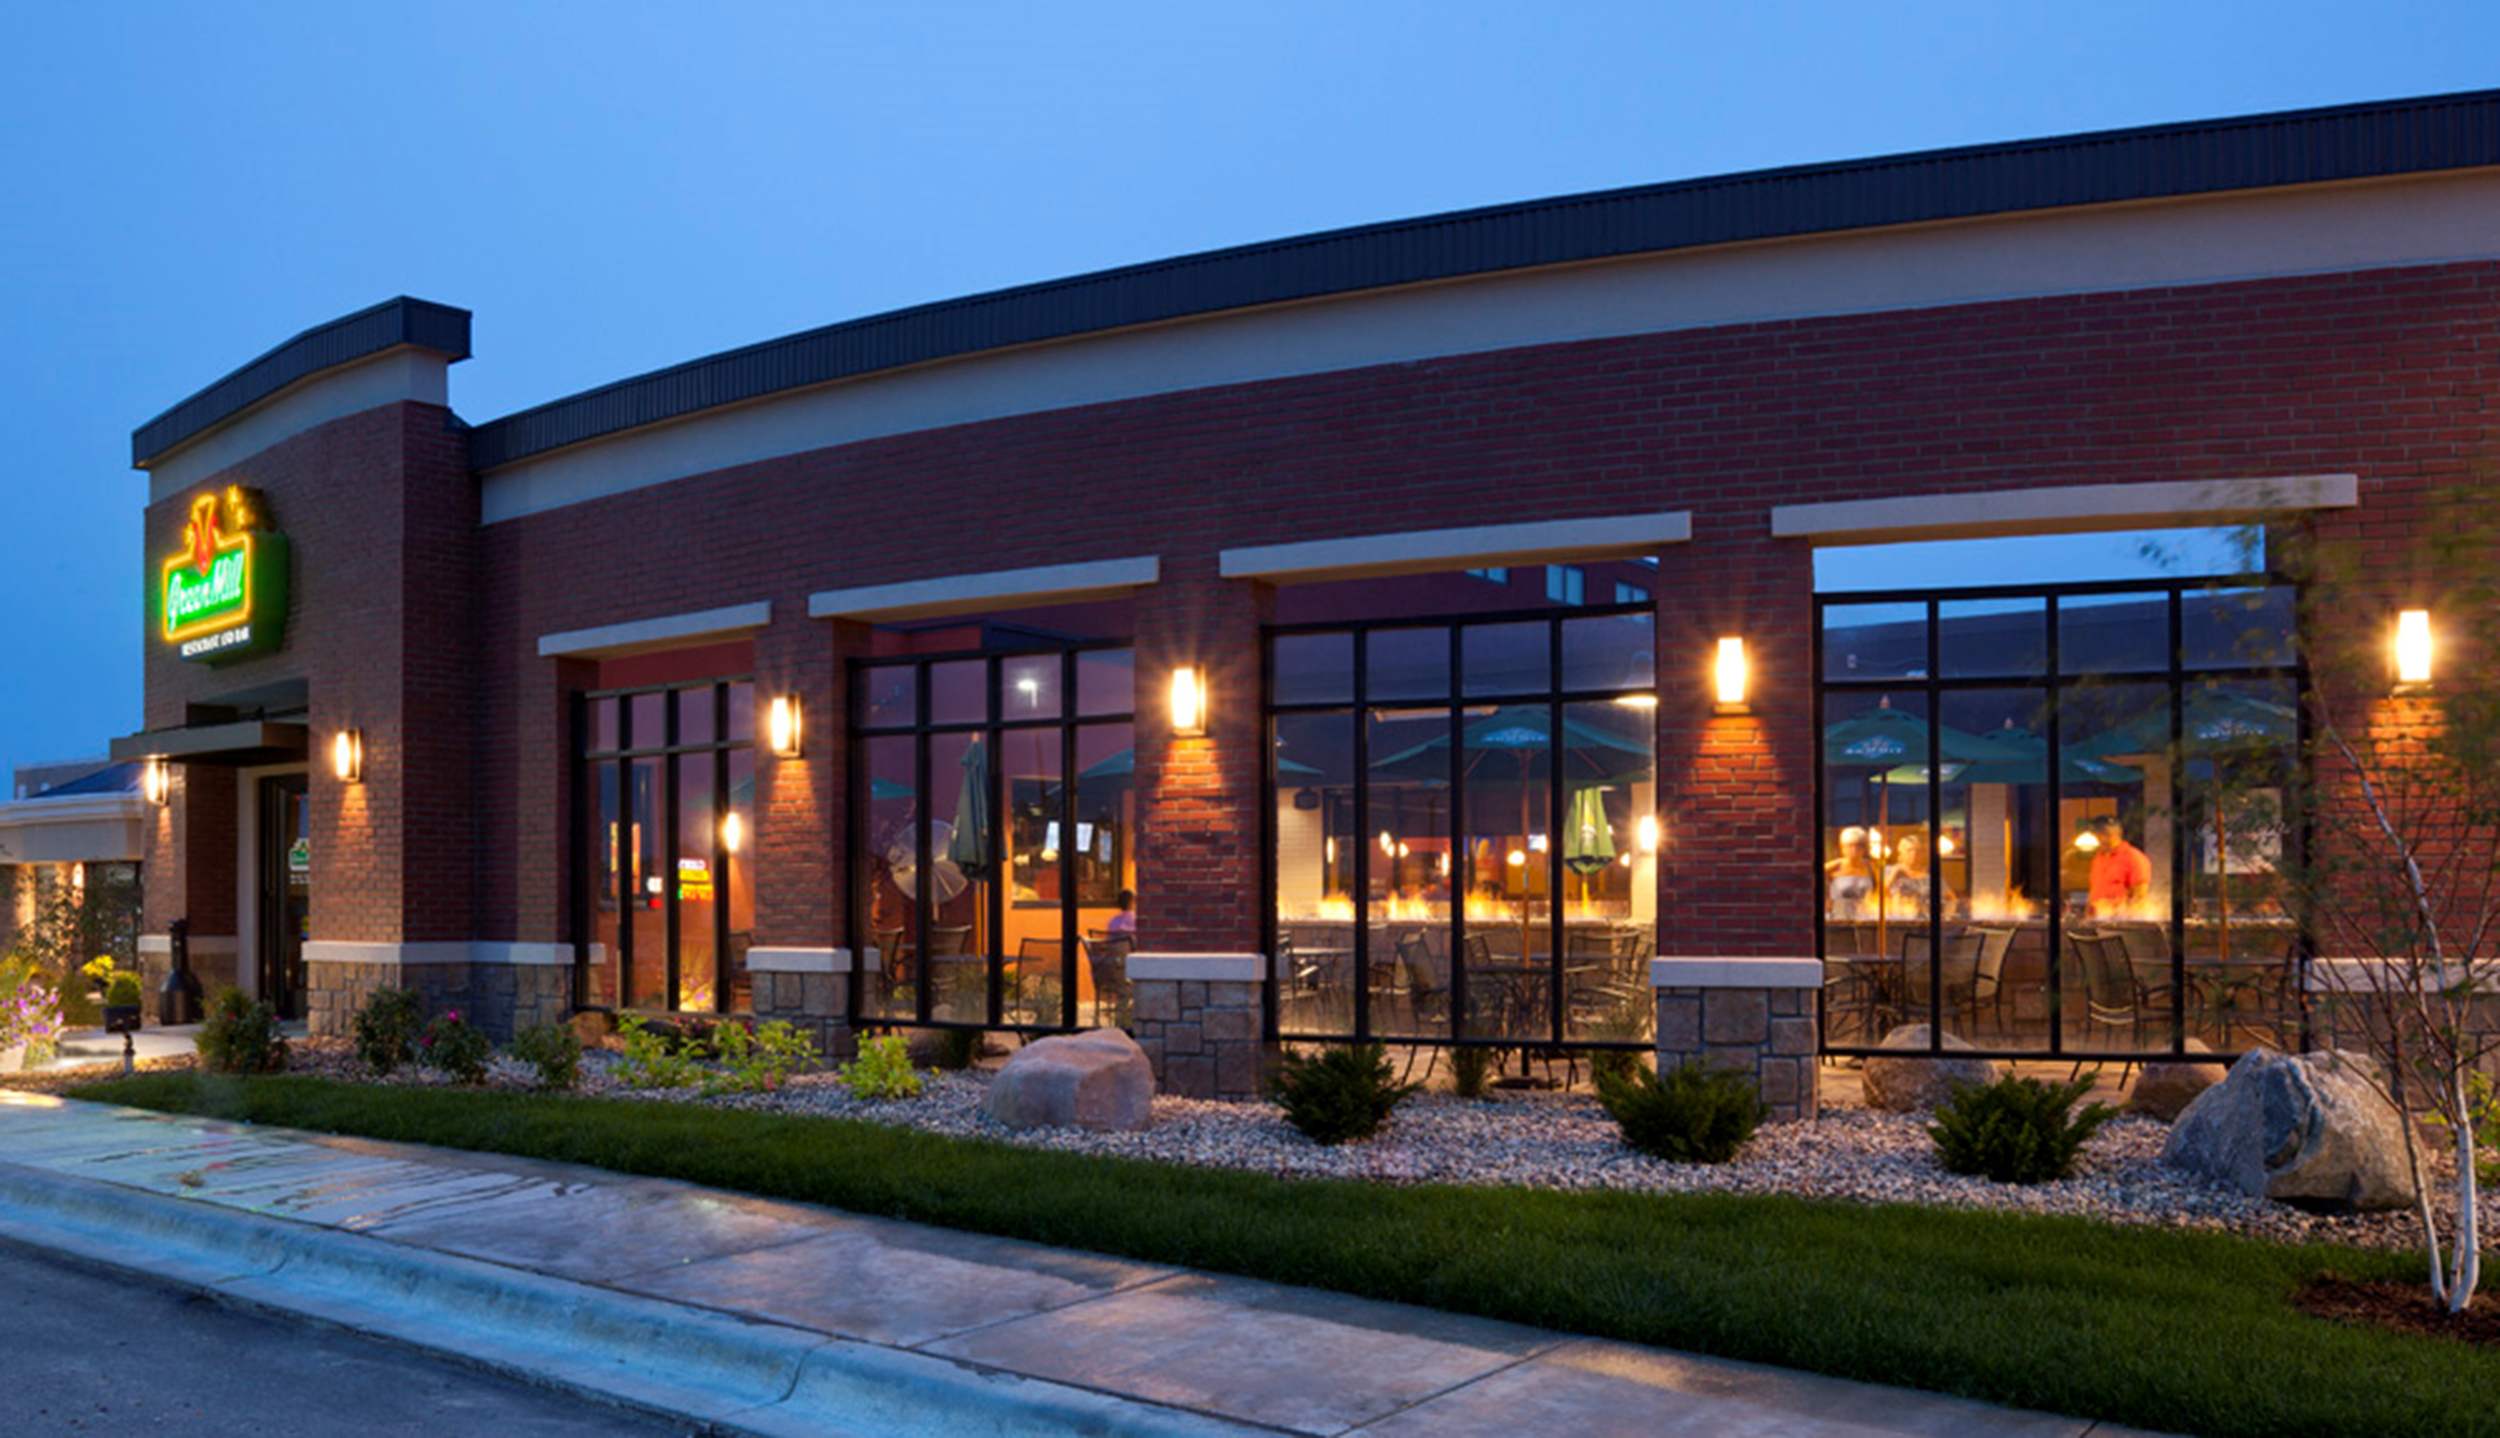 Nighttime outside view of the restaurant attached to Legacy Property in Willmar, MN